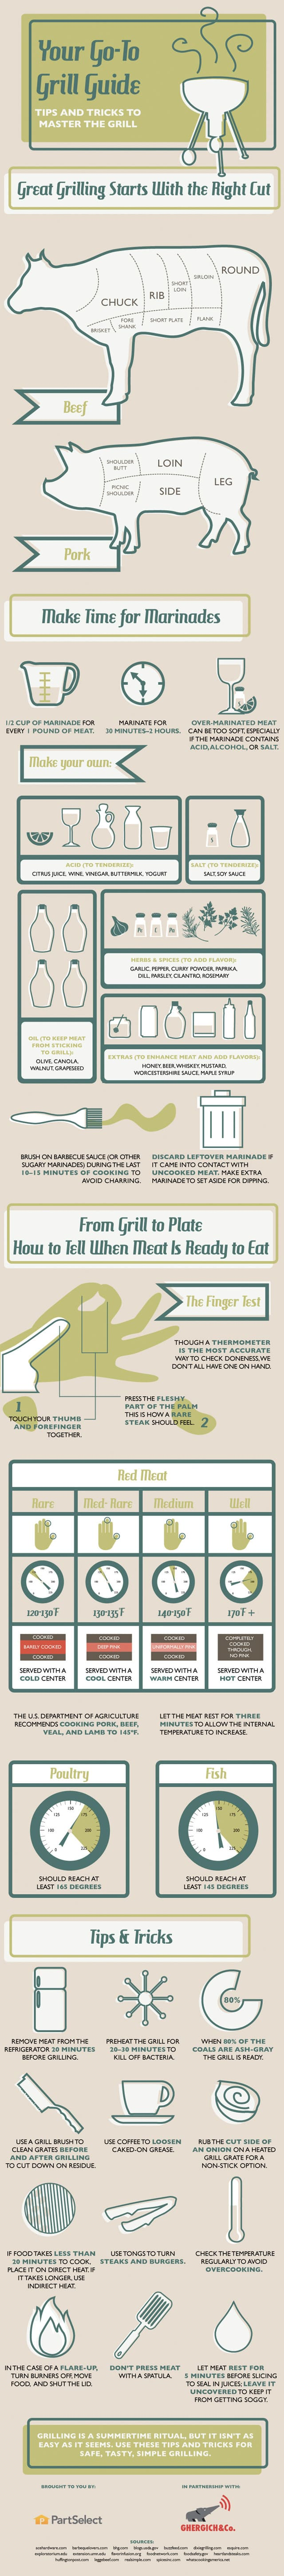 your goto grill guide tips and tricks to master the grill